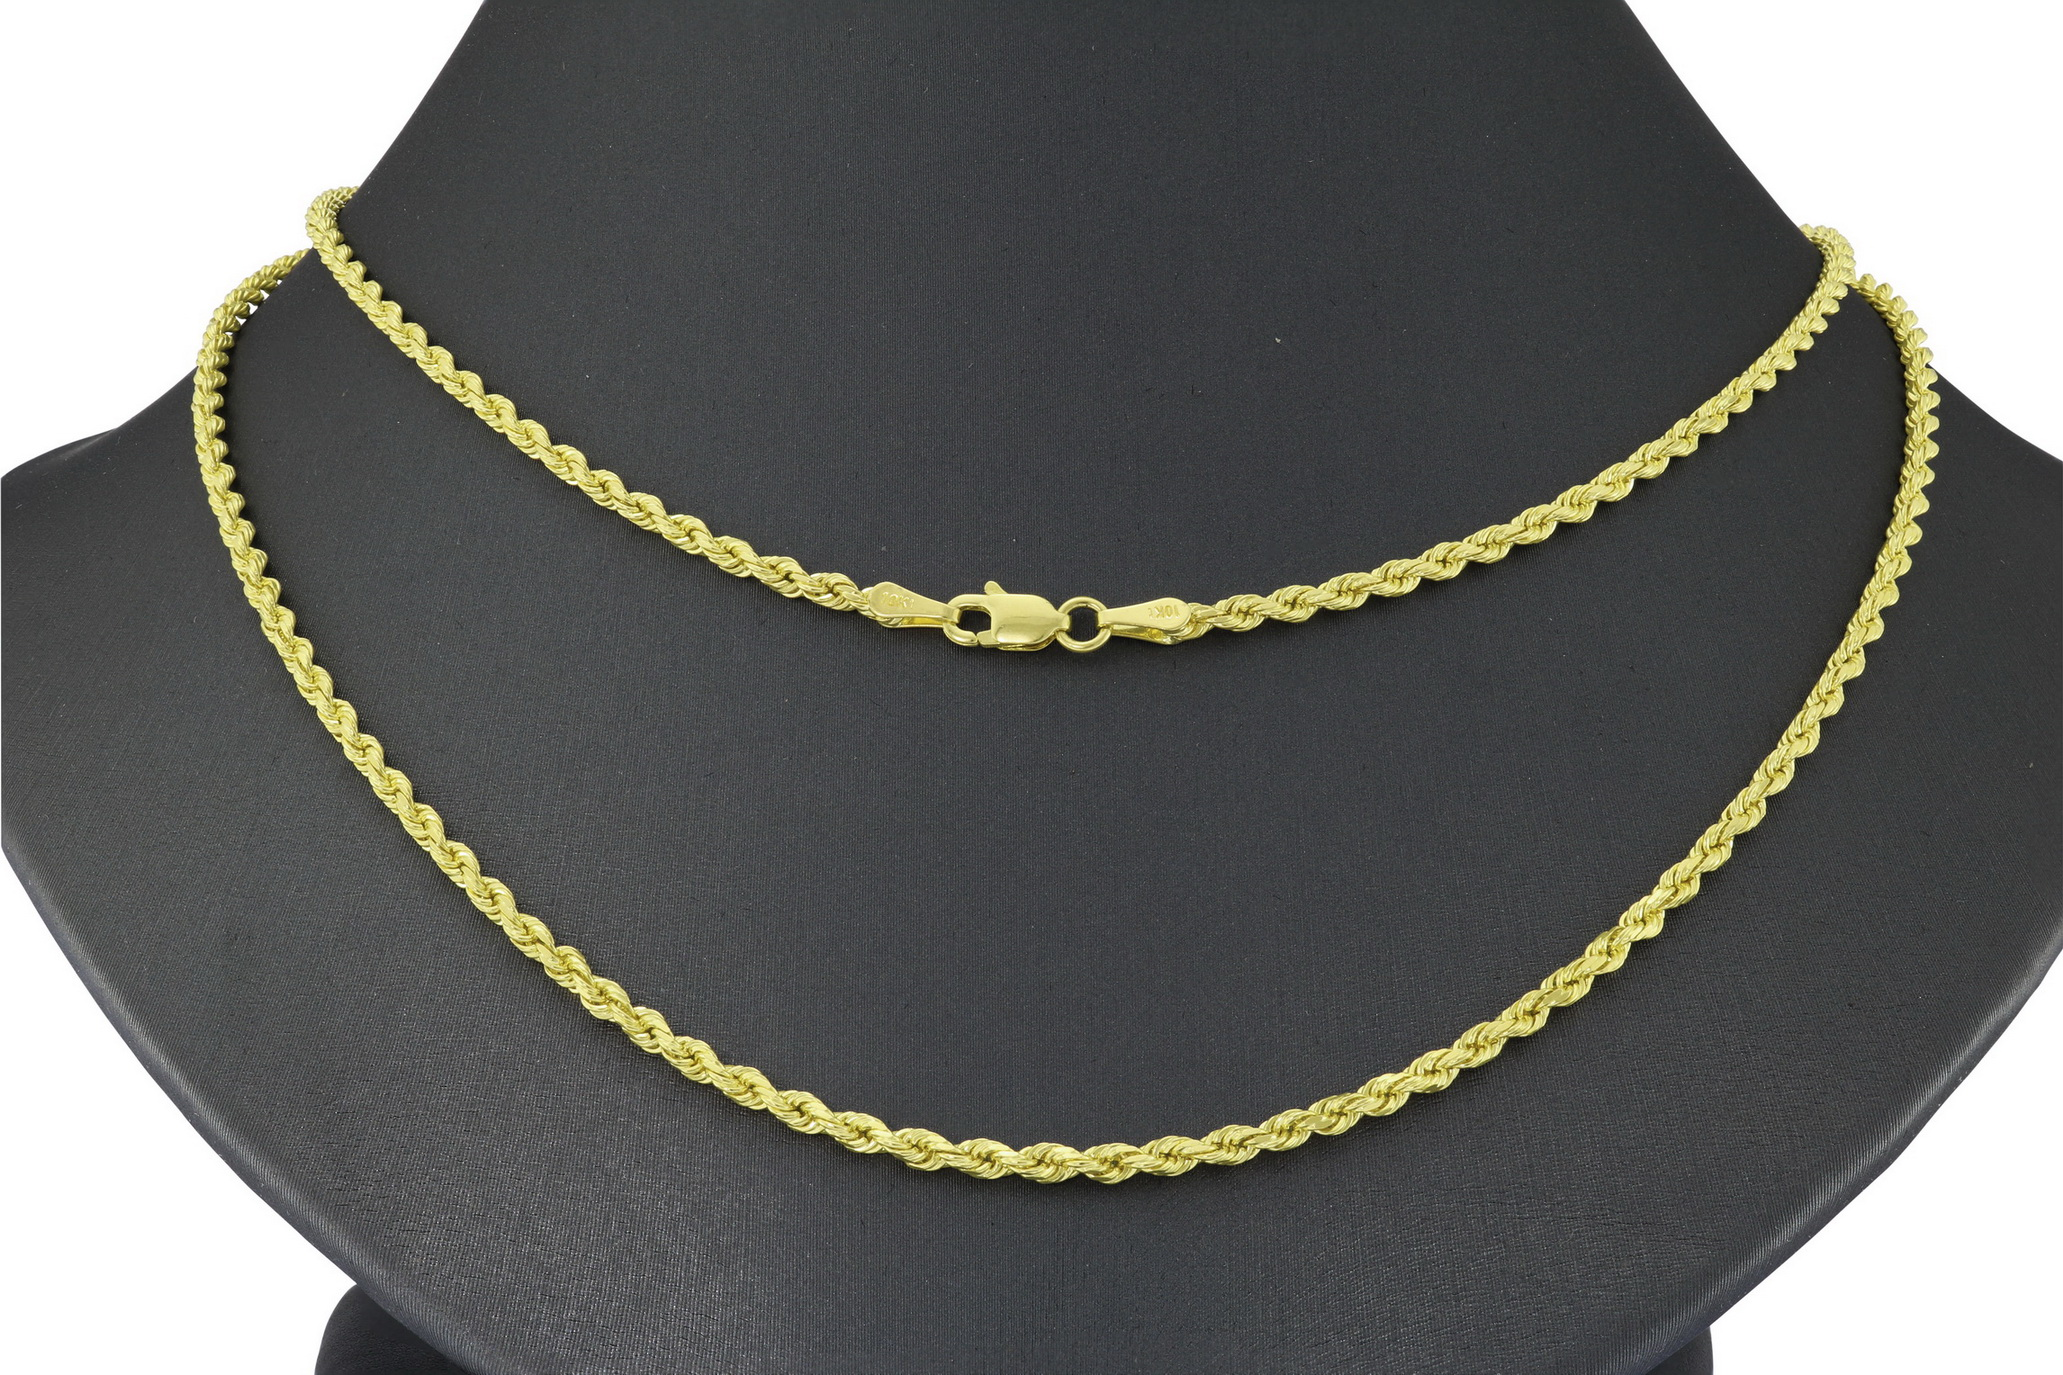 10K-Yellow-Gold-2-5mm-Solid-Rope-Chain-Pendant-Necklace-Lobster-Clasp-16-034-30-034 thumbnail 24